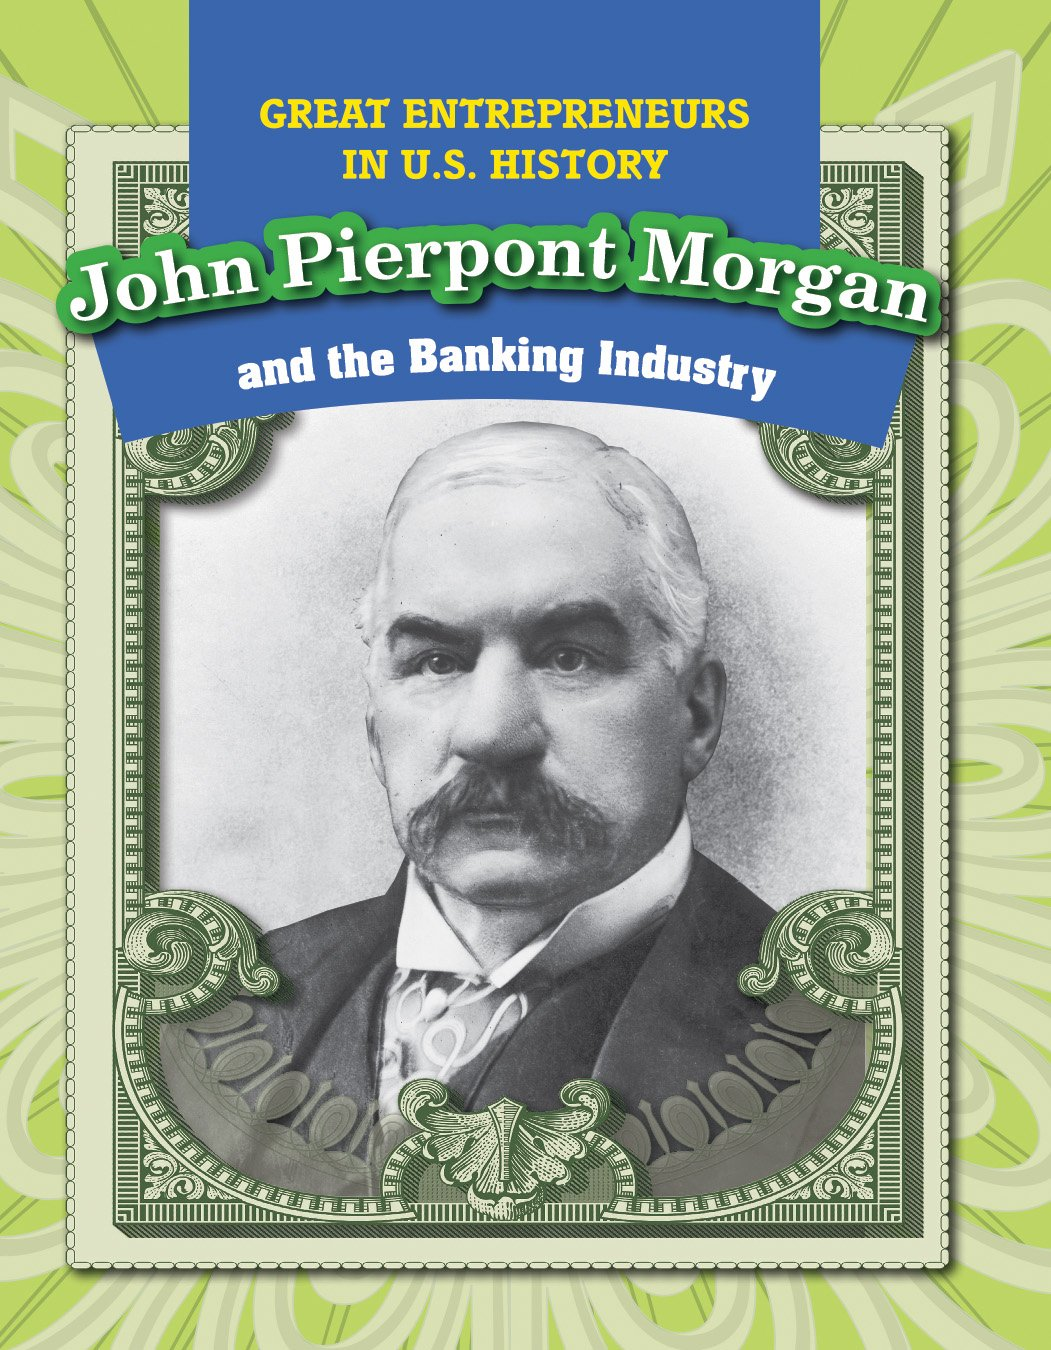 John Pierpont Morgan and the Banking Industry (Great Entrepreneurs in U.S. History)